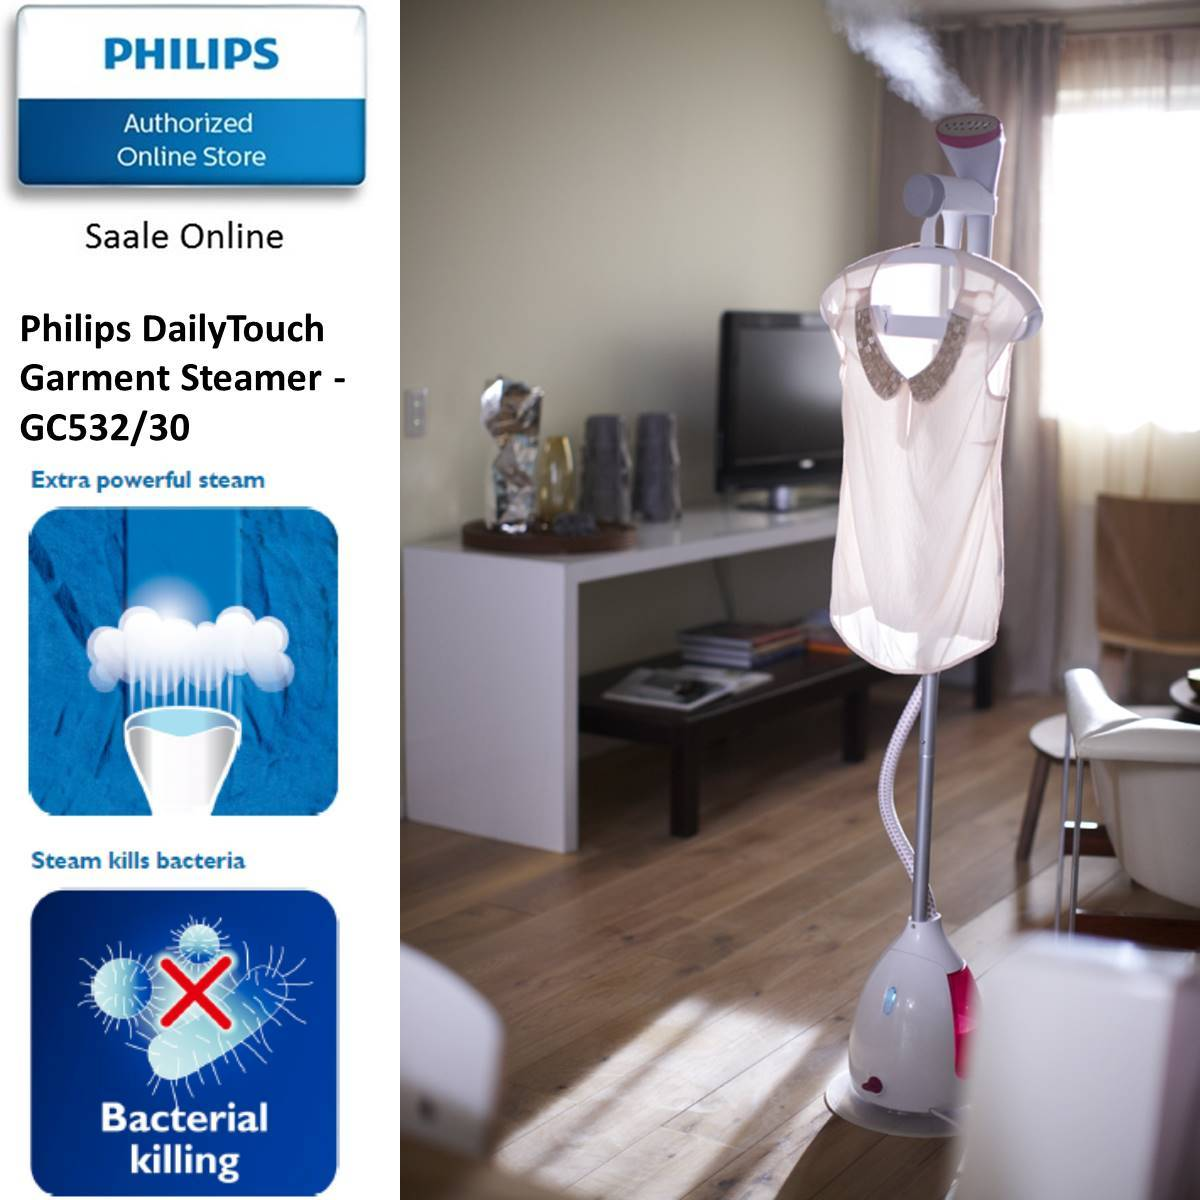 Qoo10 Philips Gc532 30 Small Appliances Garment Steamer Gc504 Show All Item Images